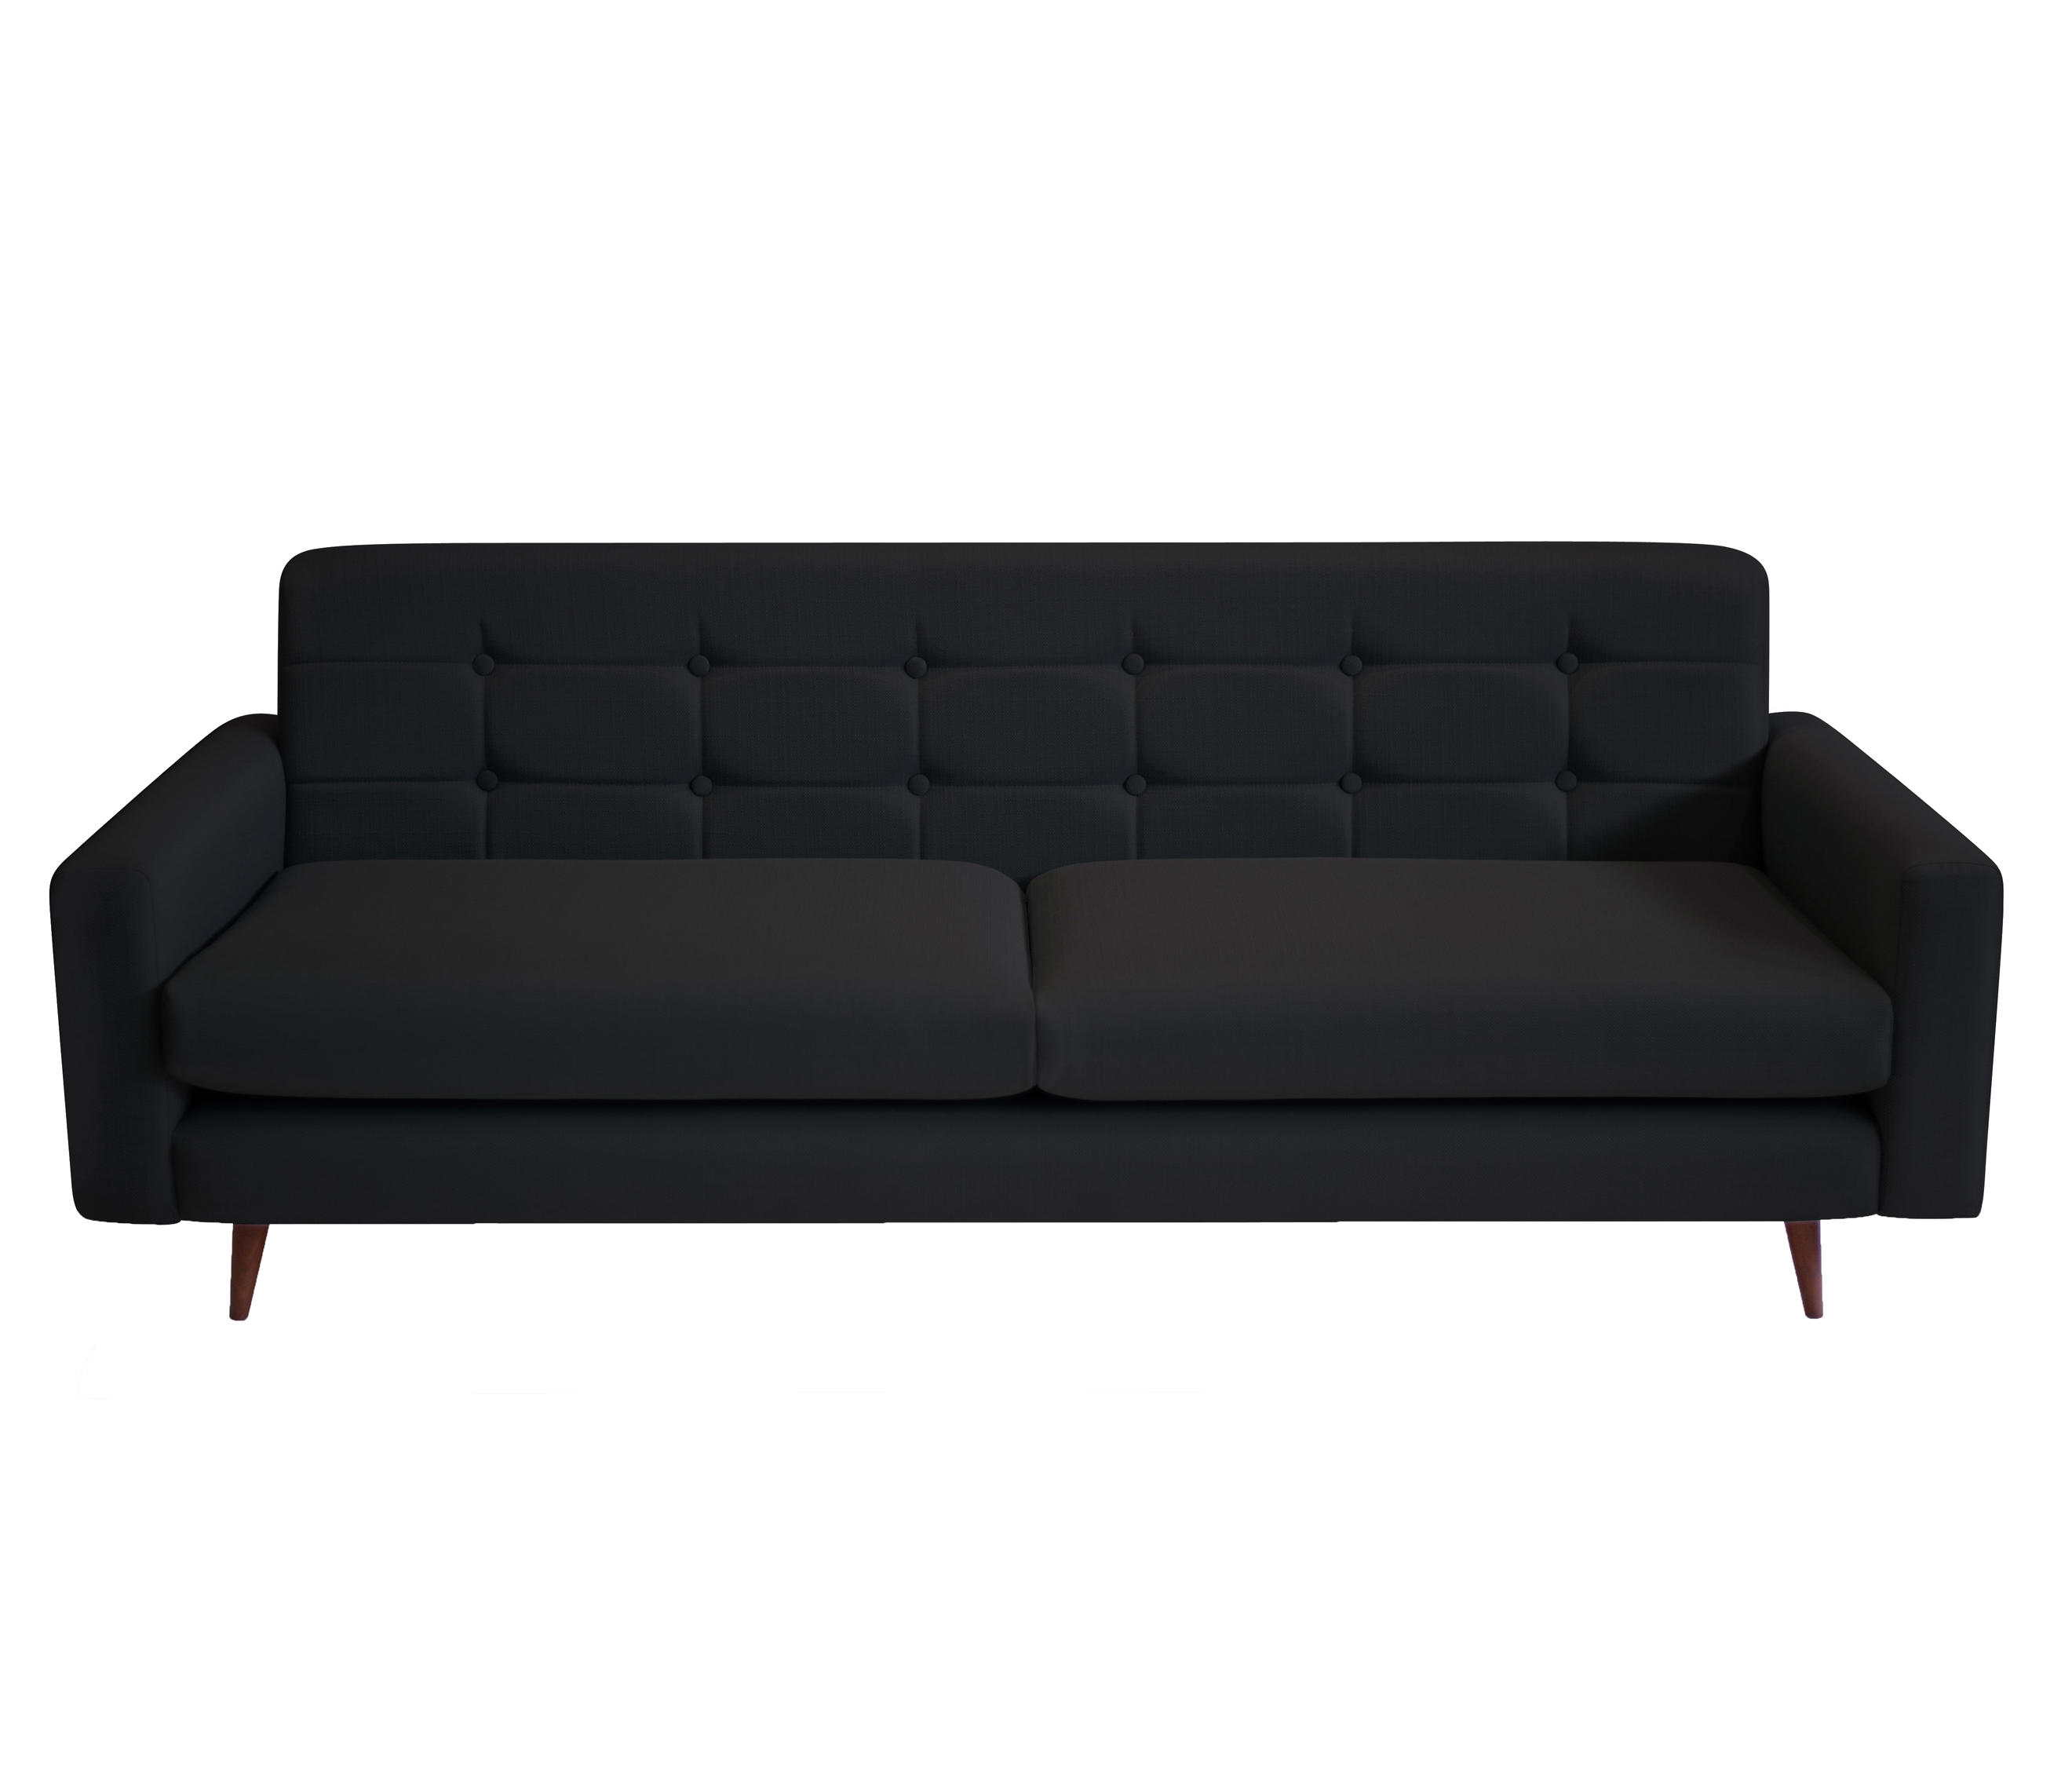 Chelsea Sofa Sofas From Lounge 22 Architonic